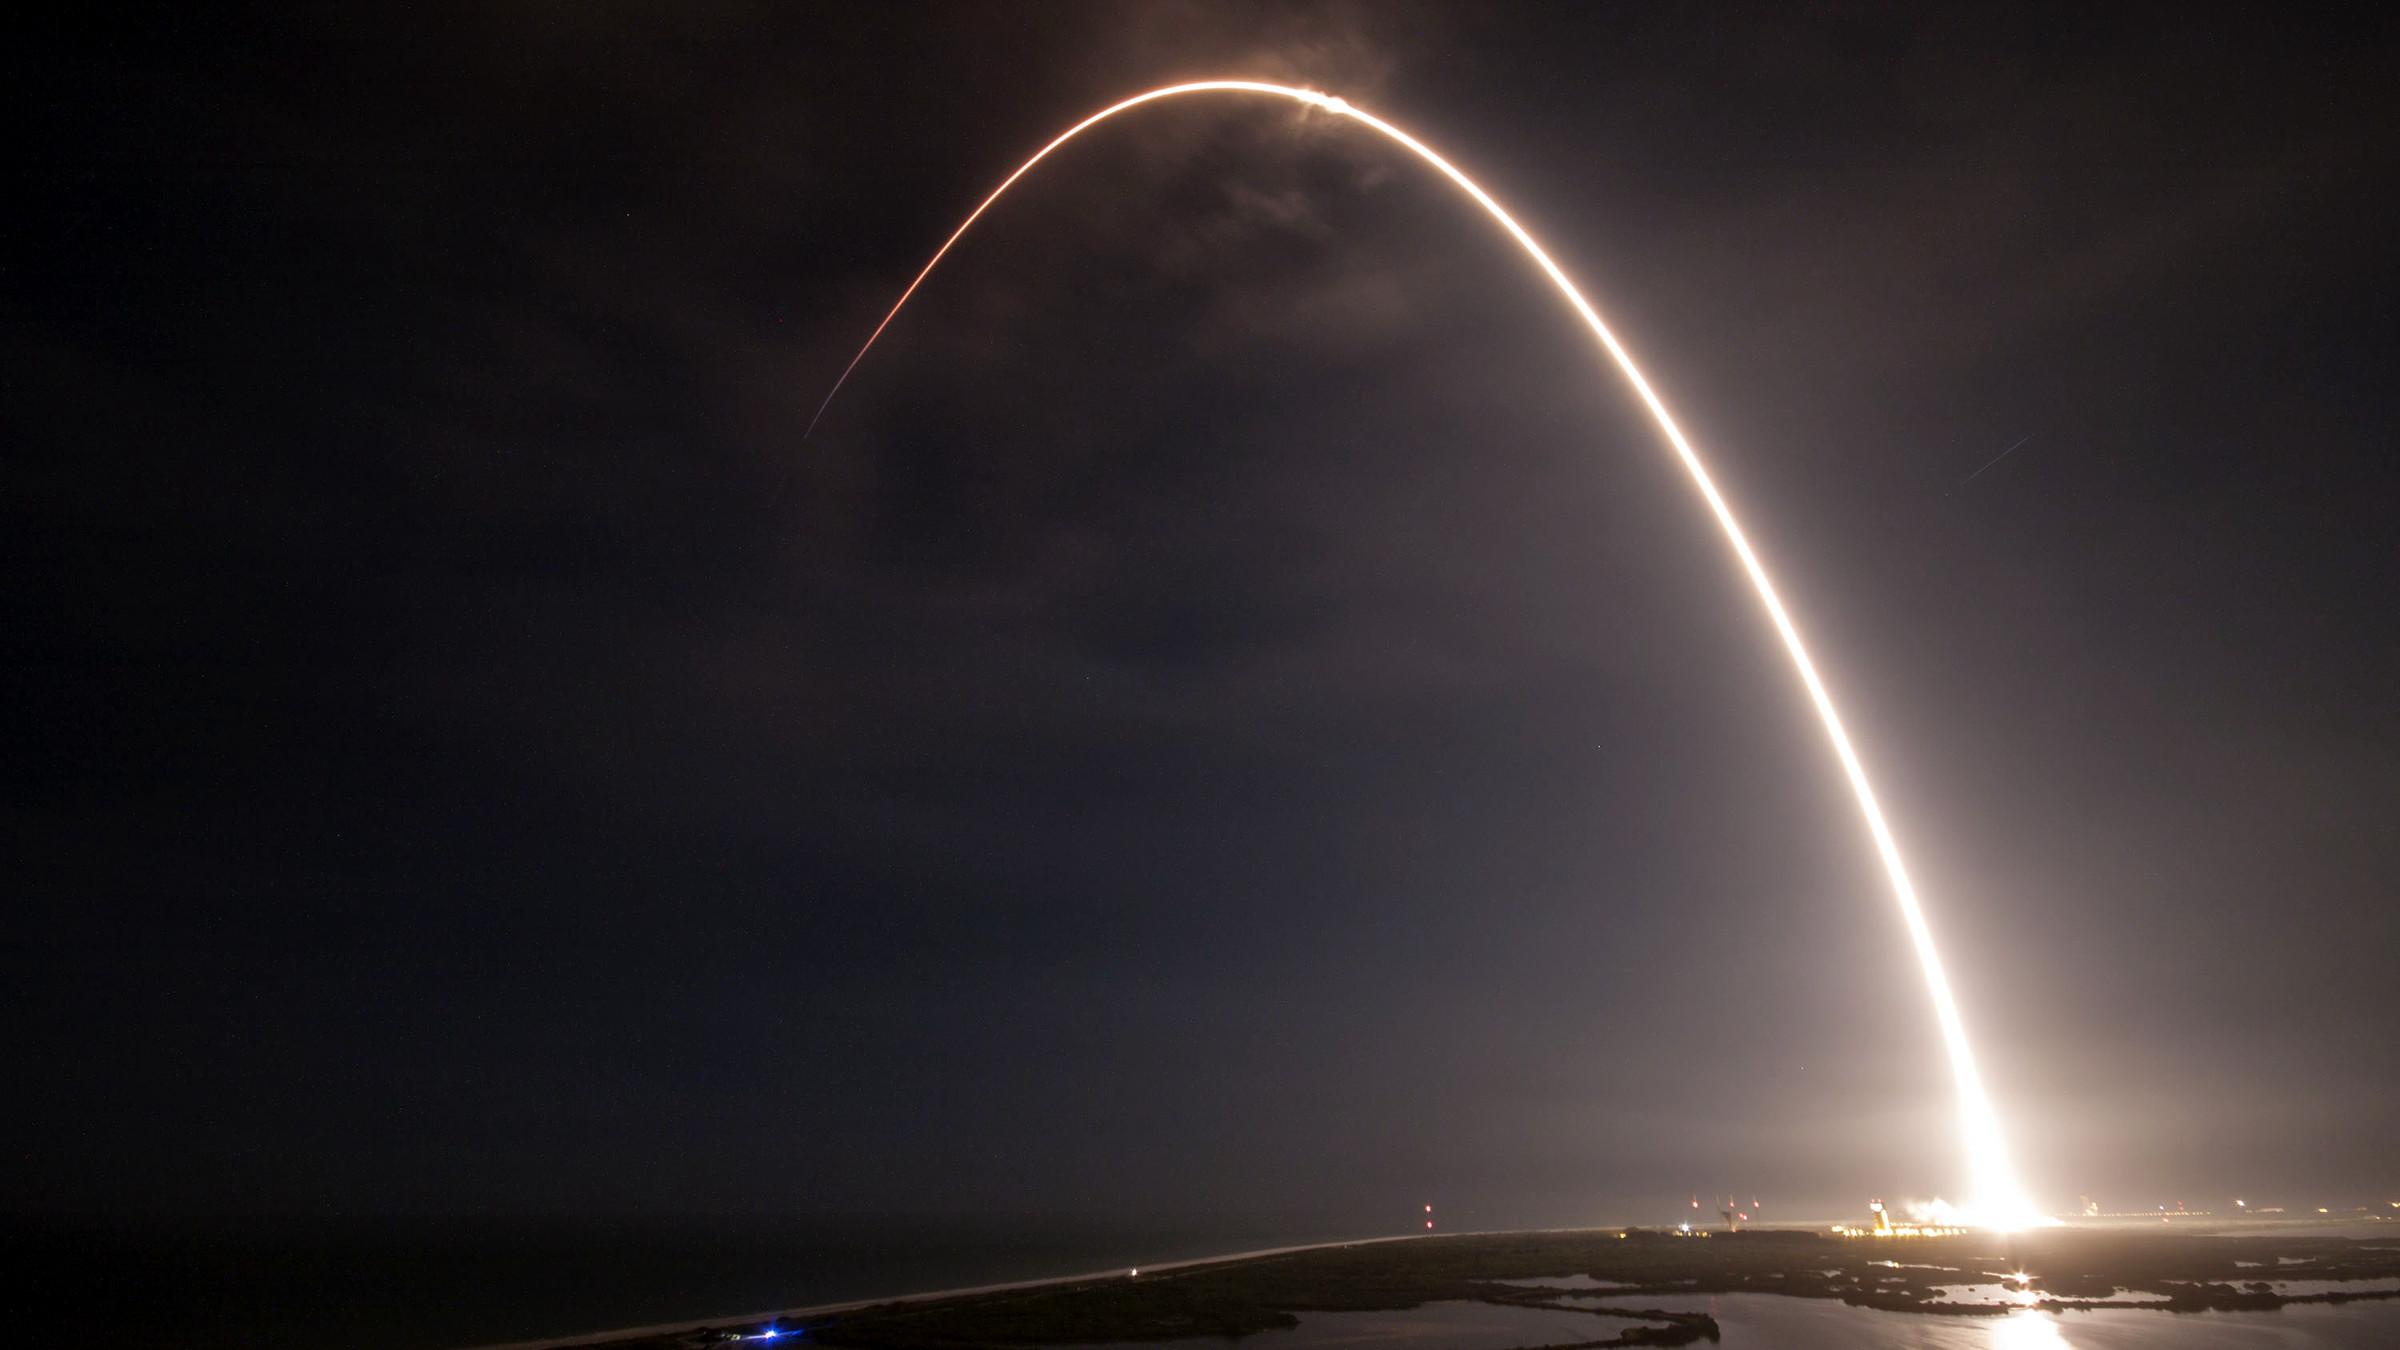 A SpaceX Falcon 9 carrying JCSAT-16 takes off on 8/14/16.